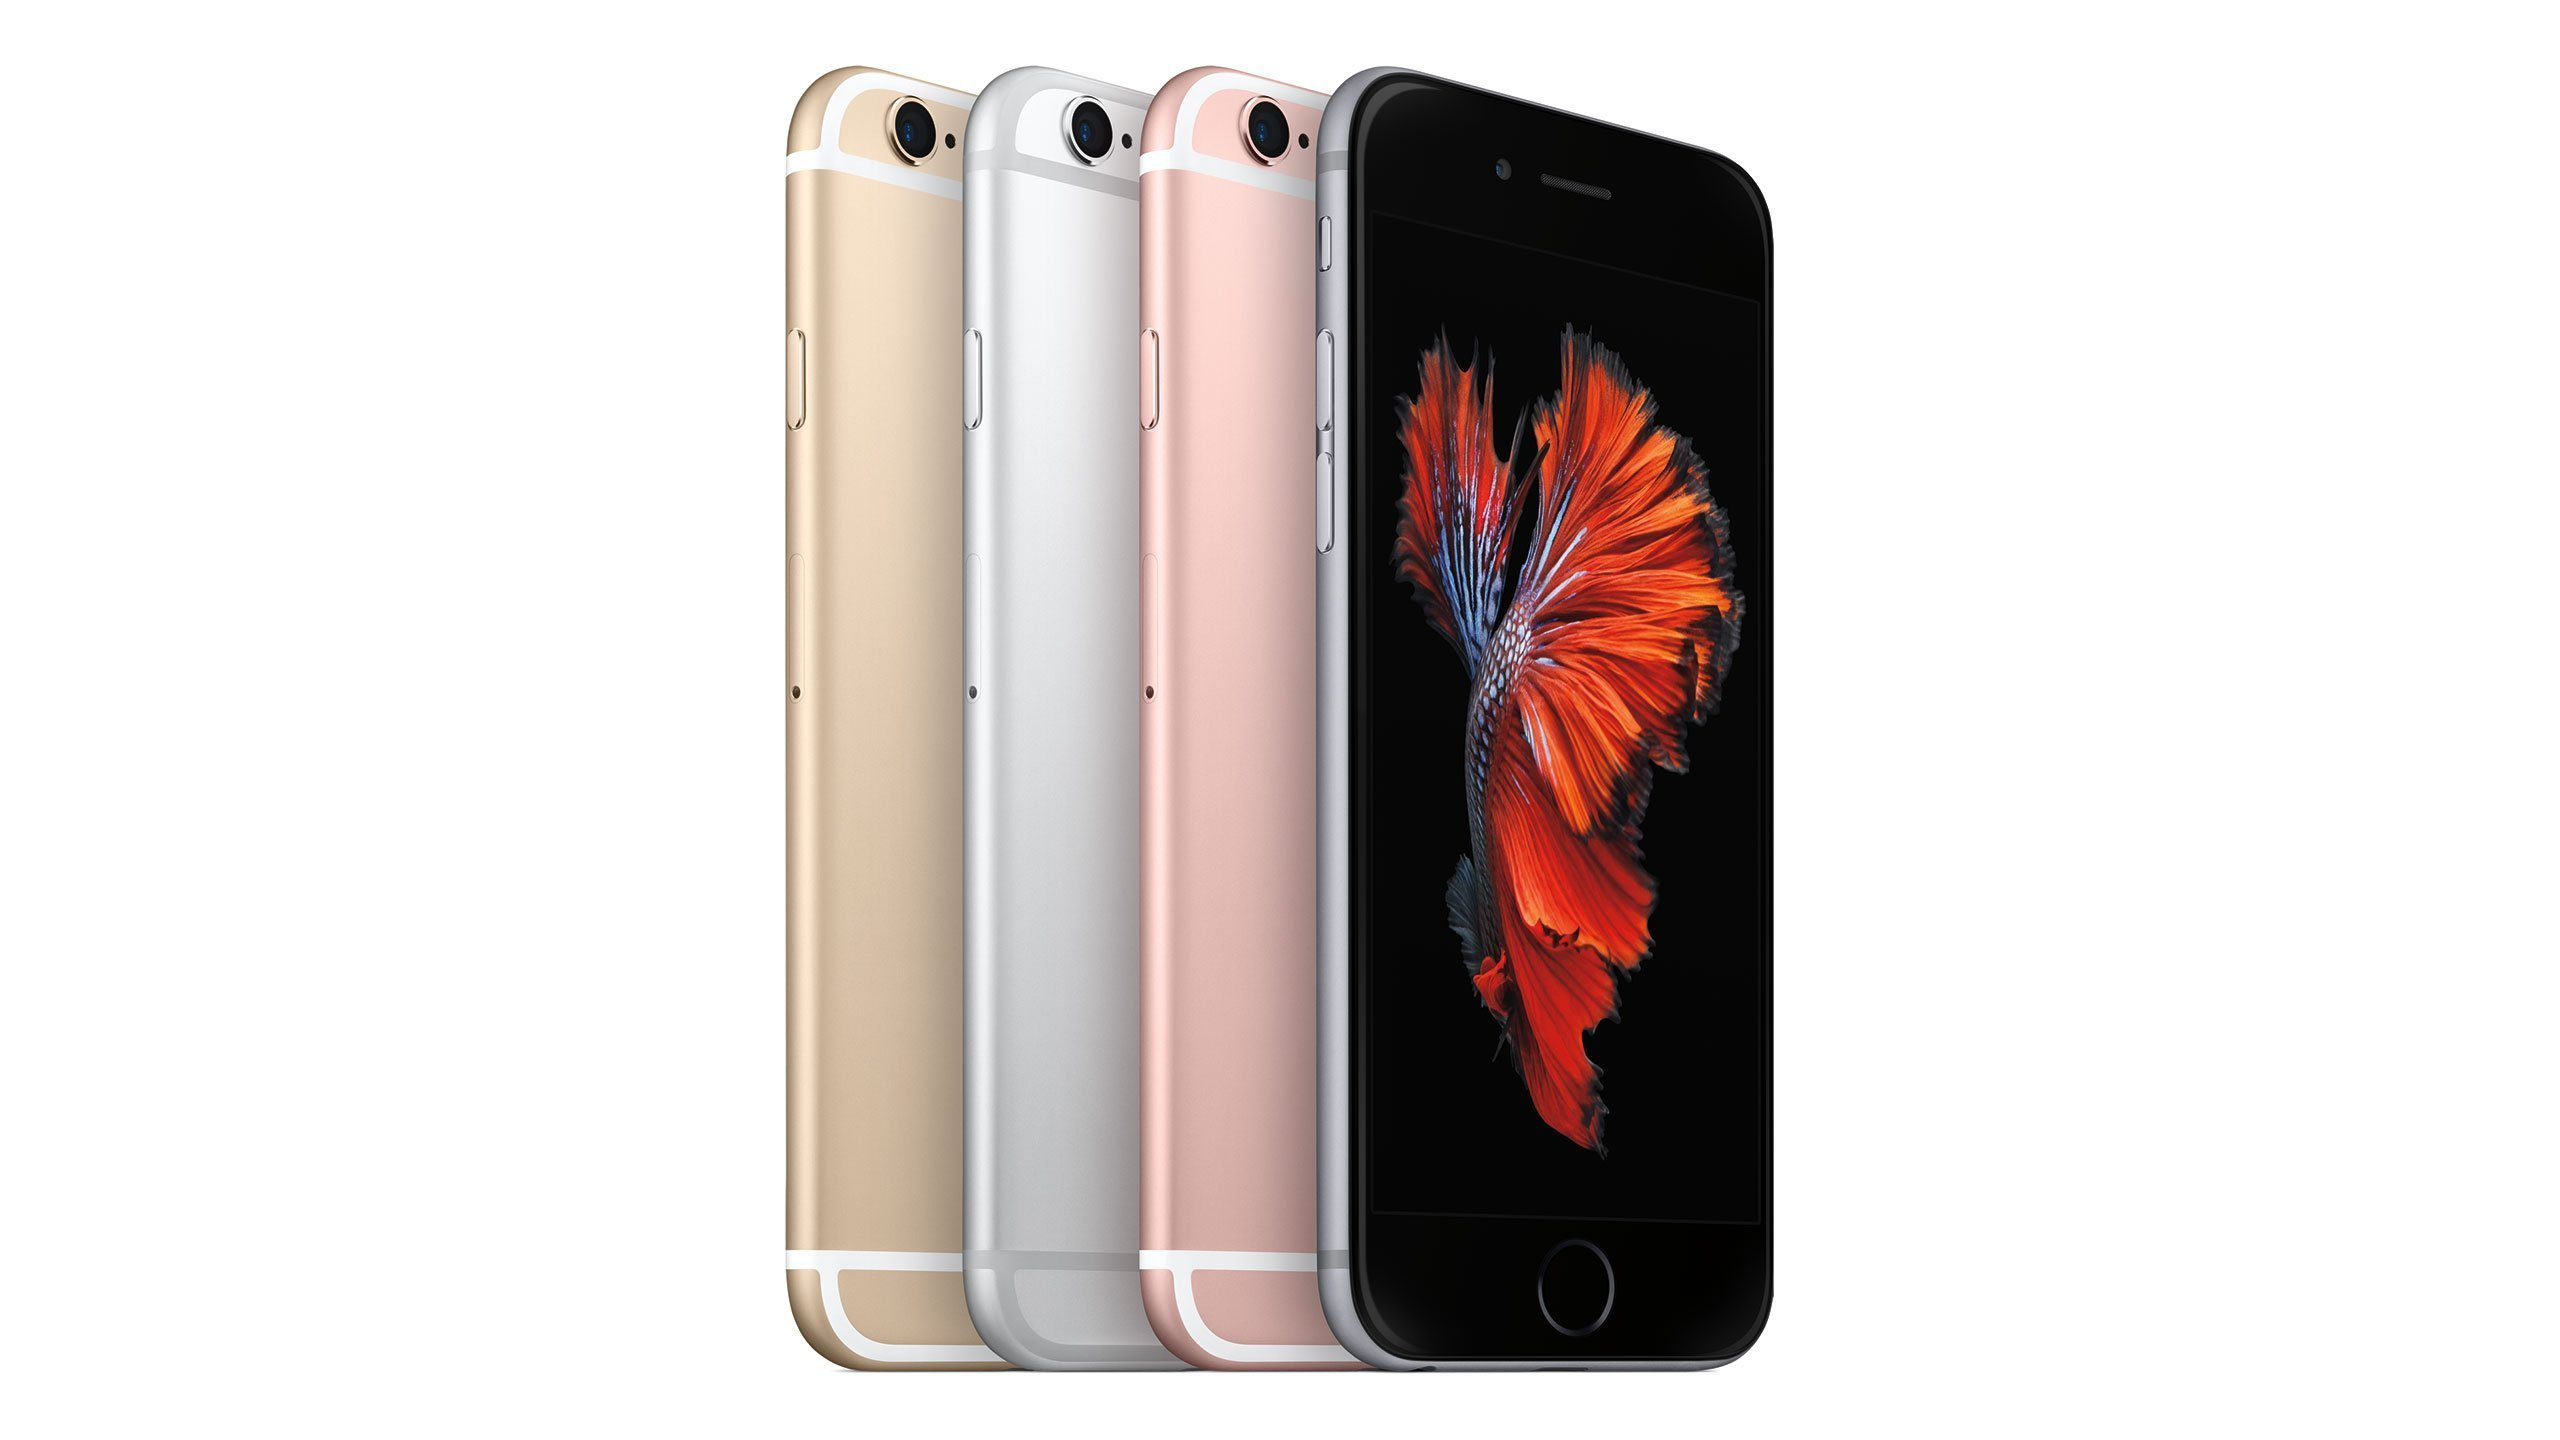 Apple officials the iPhone 6s and iPhone 6s Plus